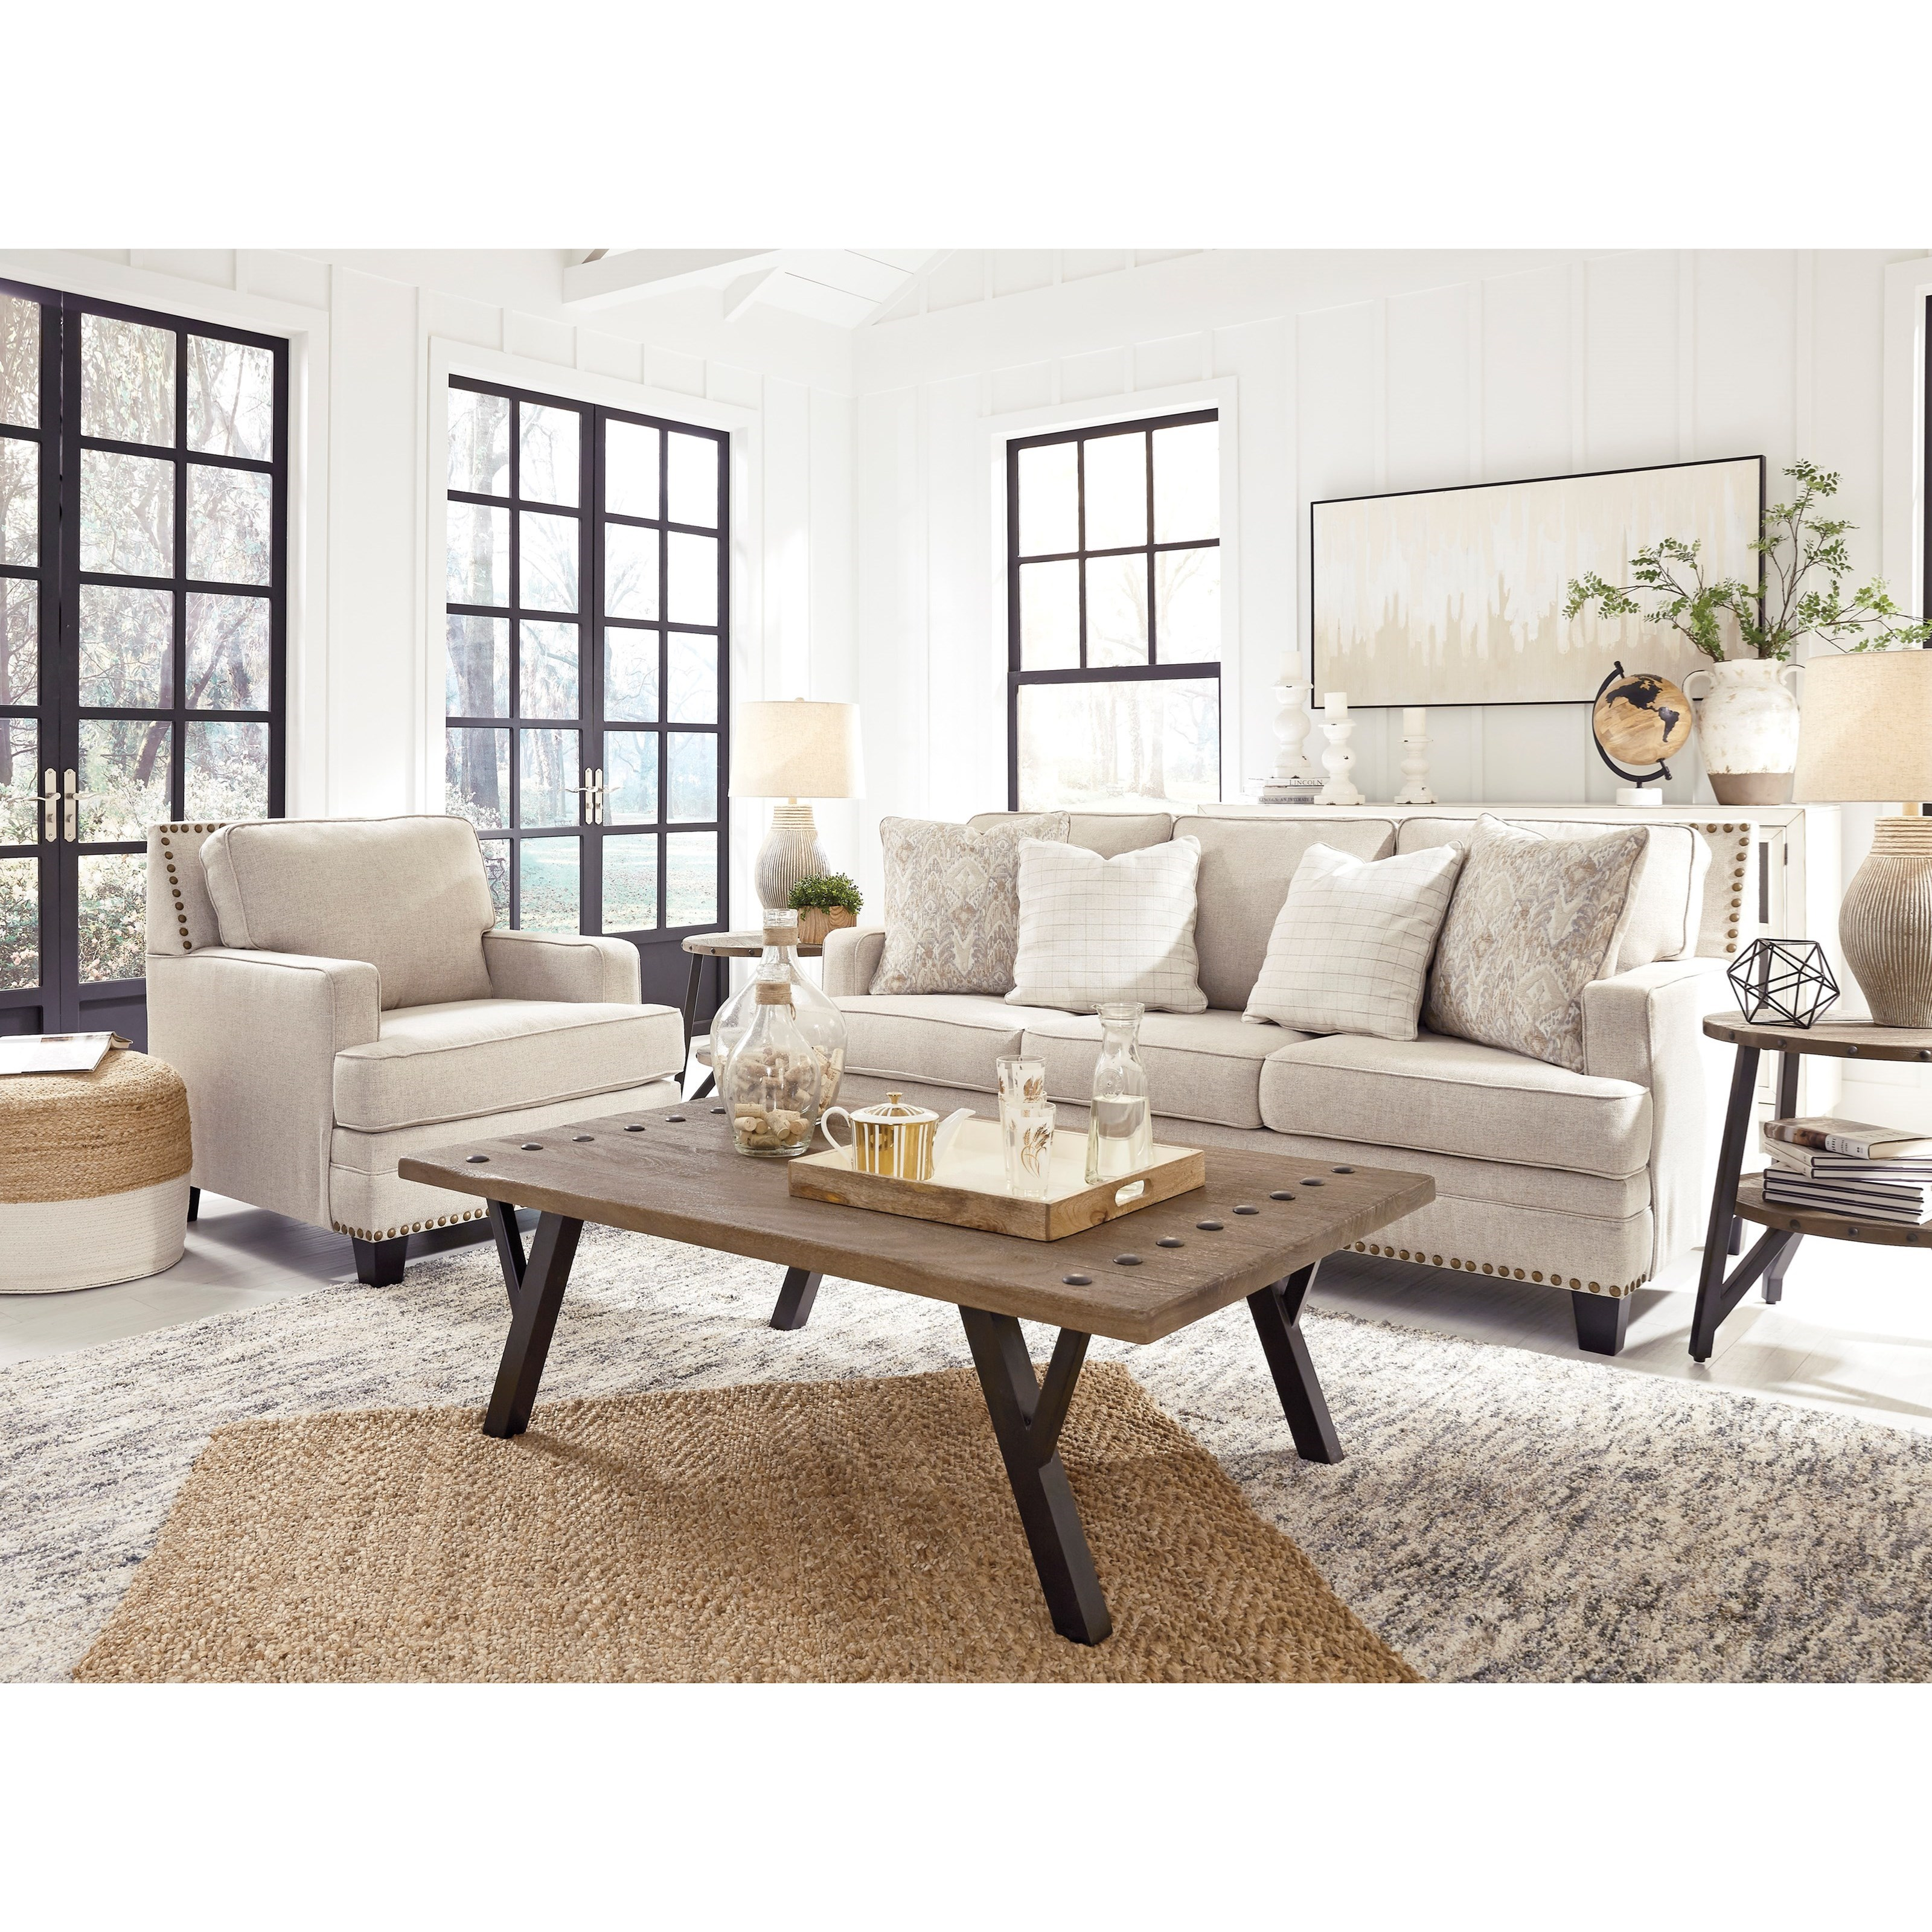 Claredon  Living Room Group by Benchcraft at Northeast Factory Direct